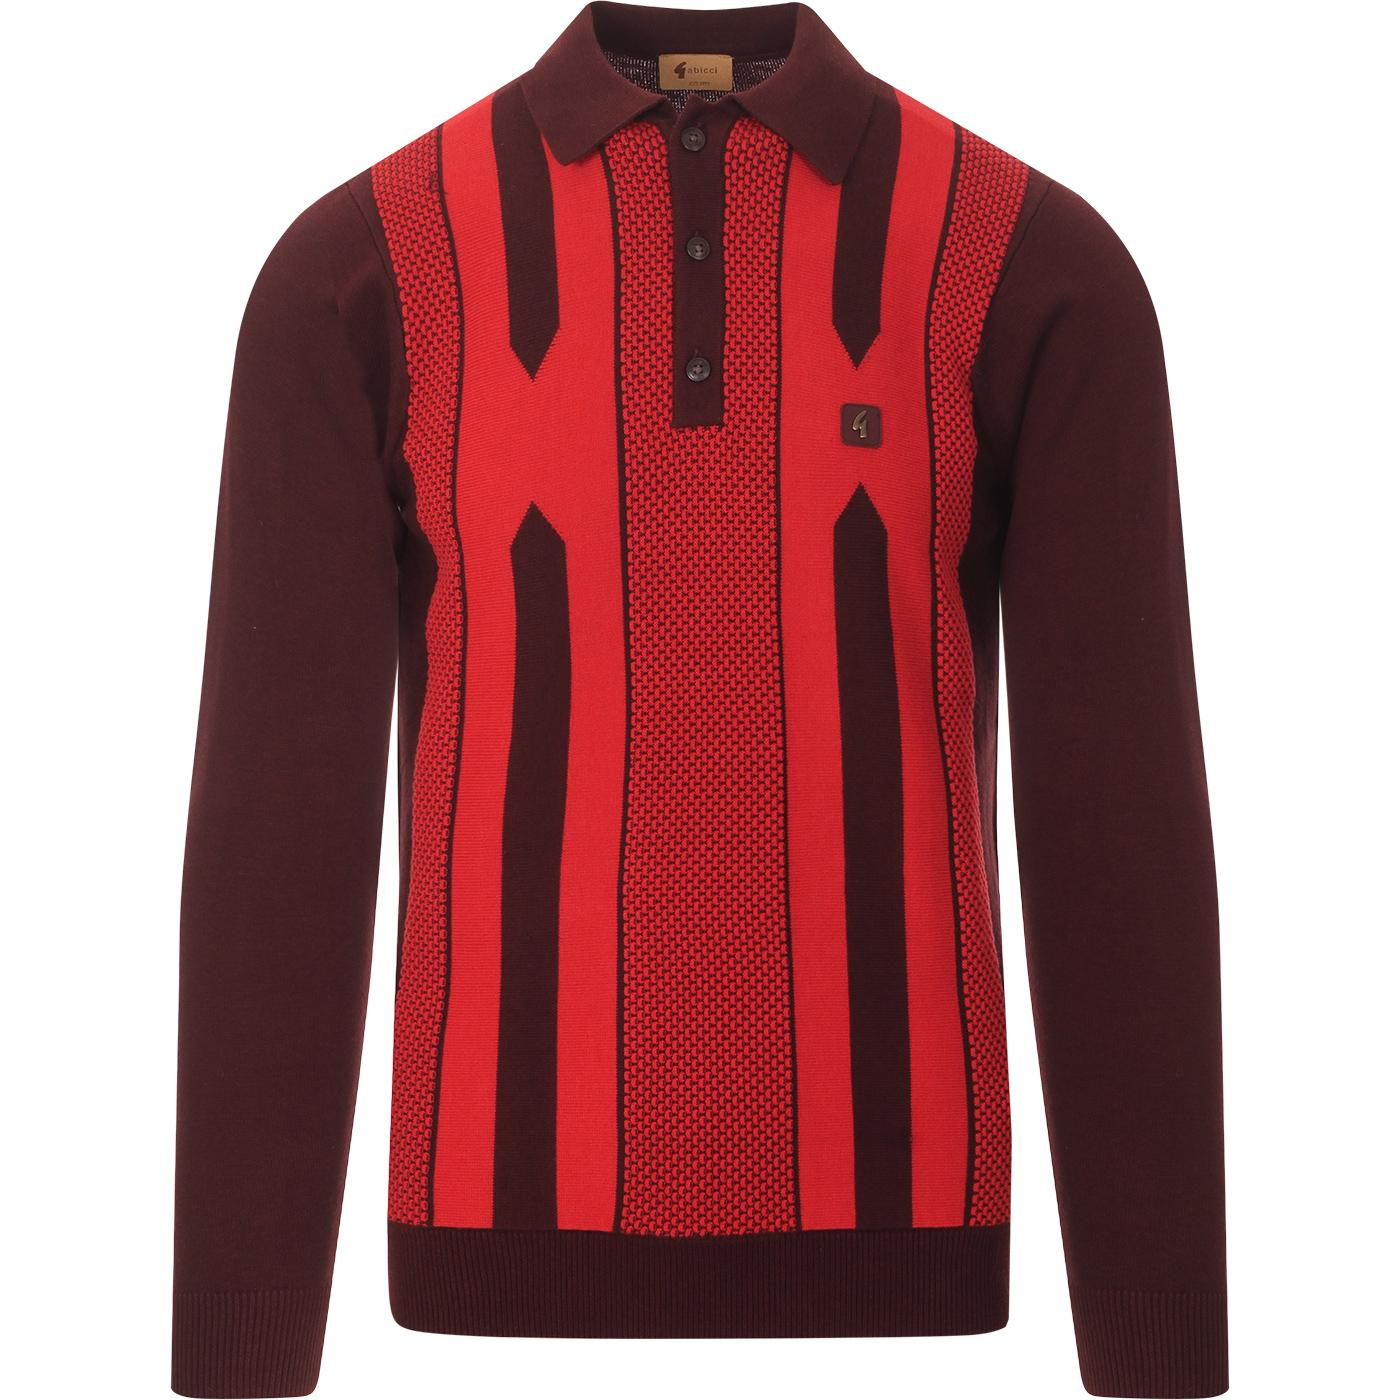 Cooper GABICCI VINTAGE Retro 80s Knitted Polo R